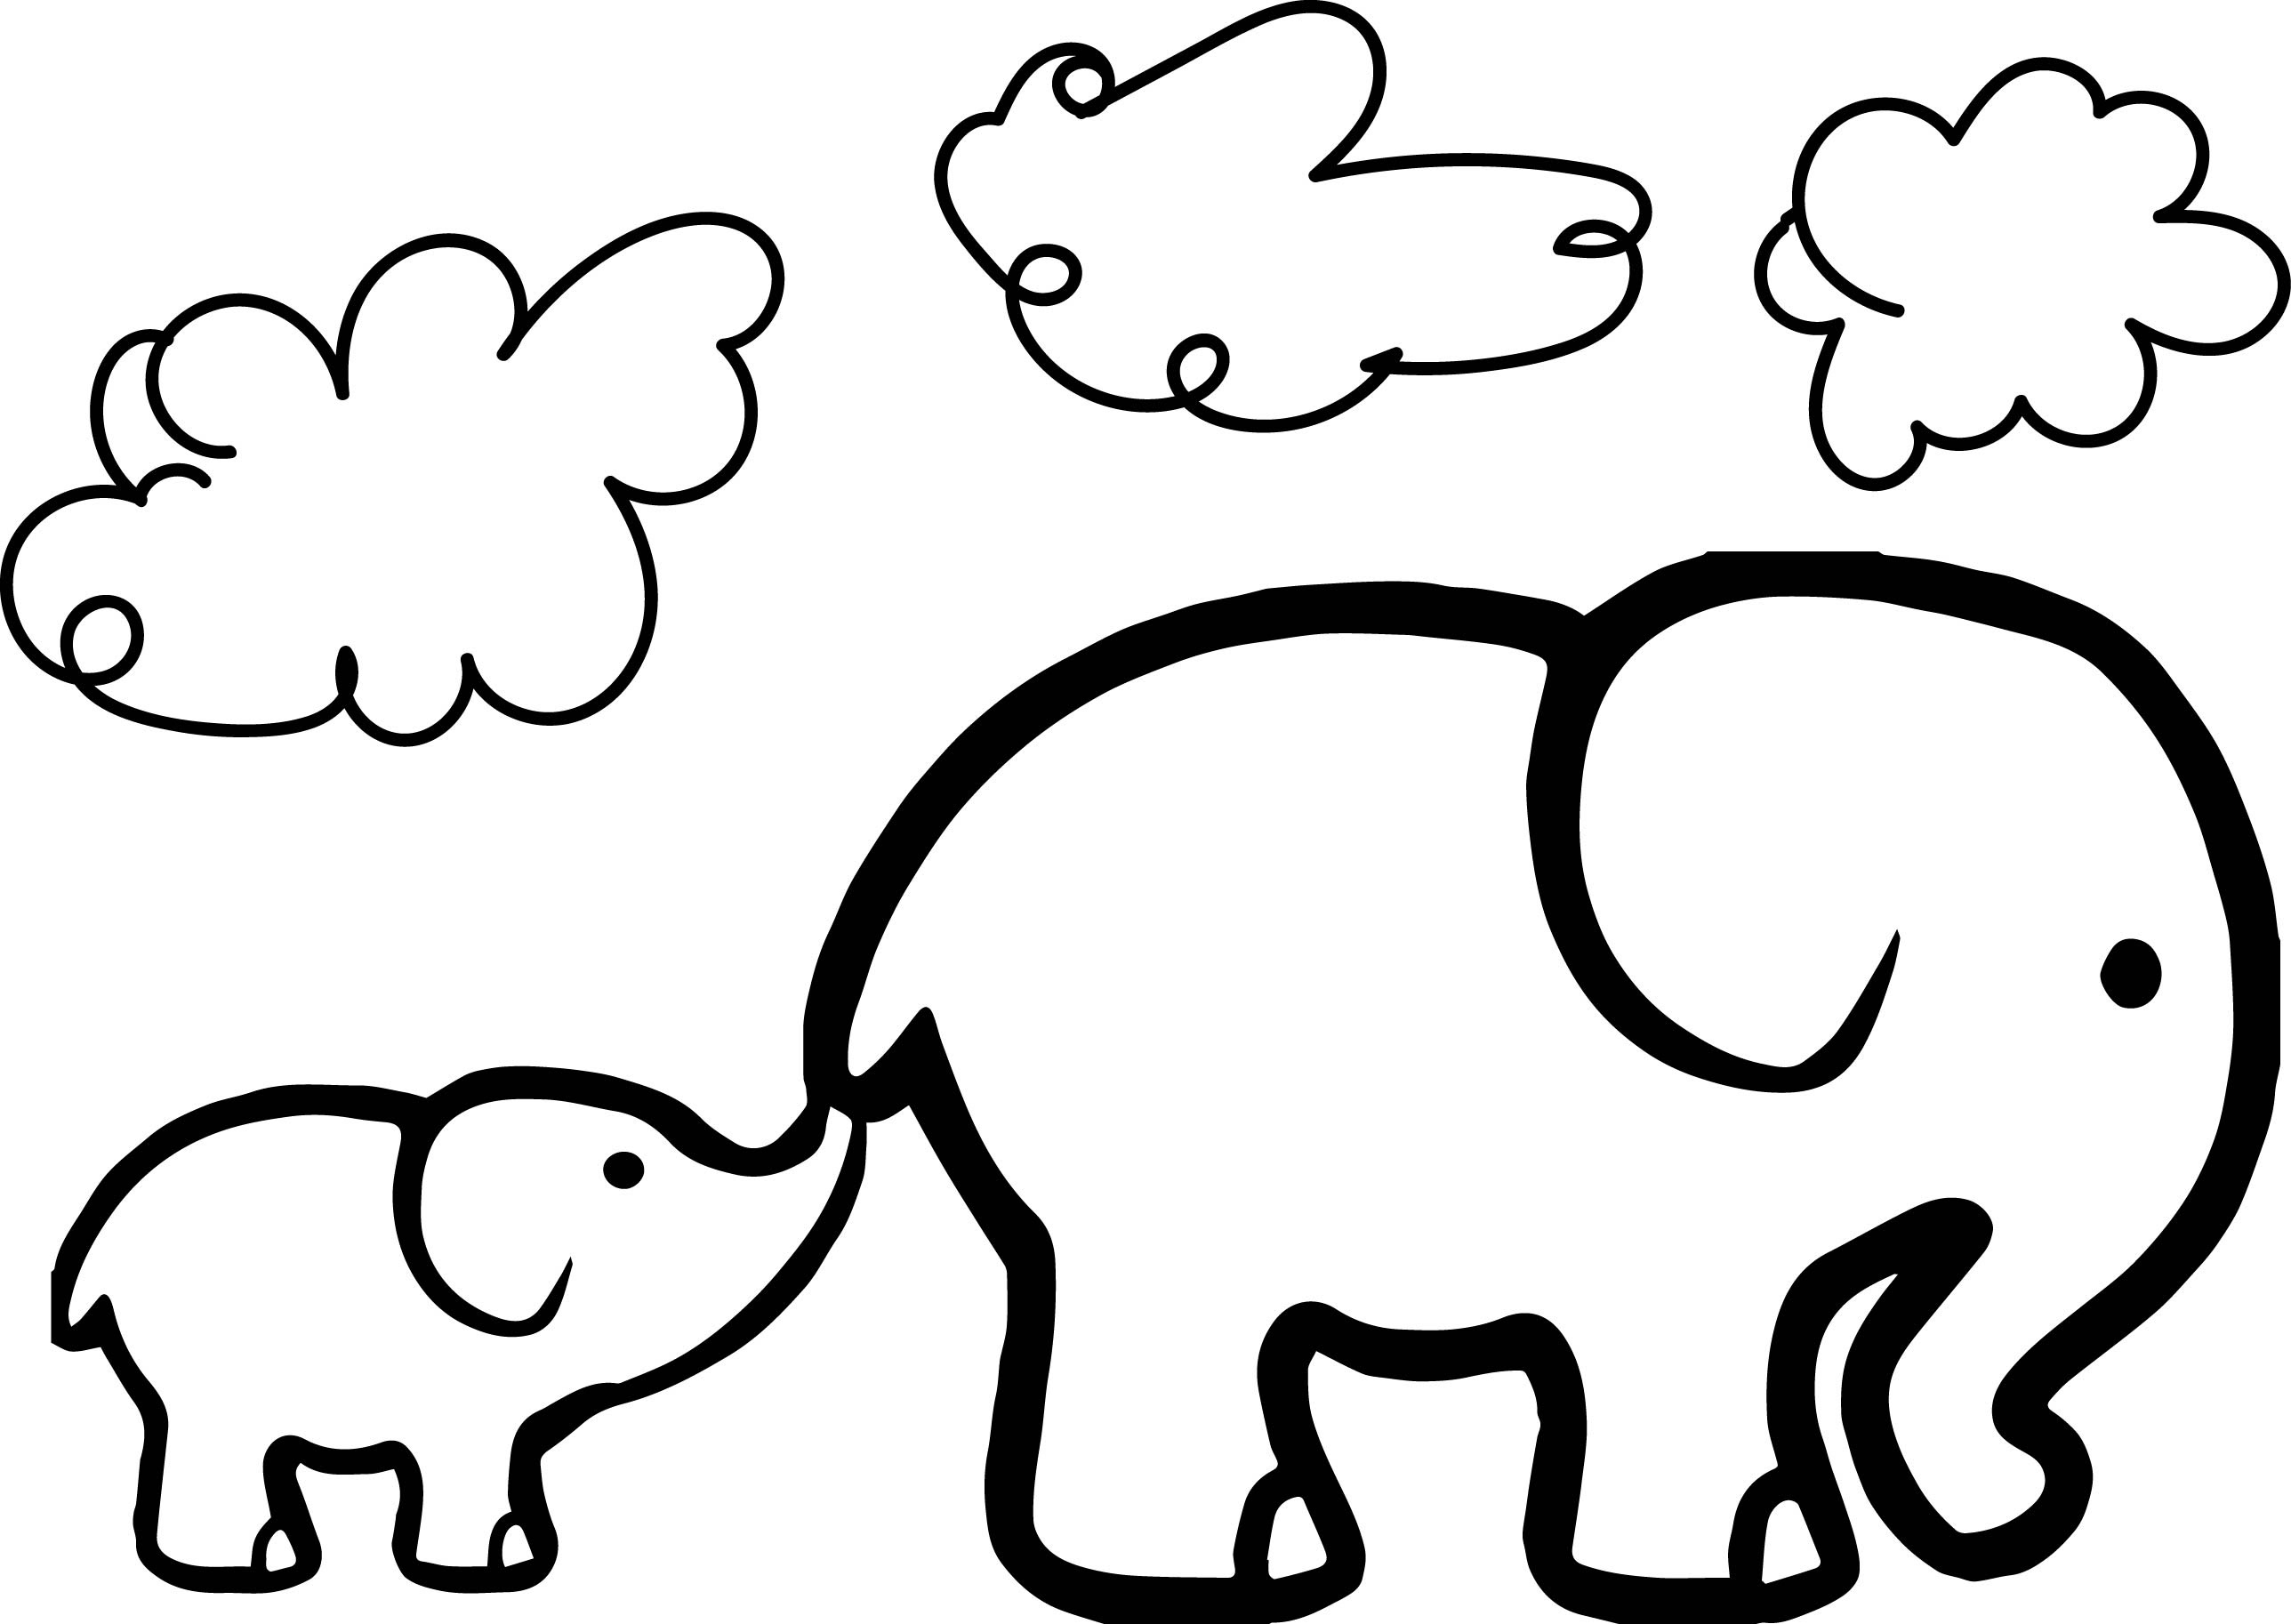 Elephant Coloring Pages | Free download on ClipArtMag